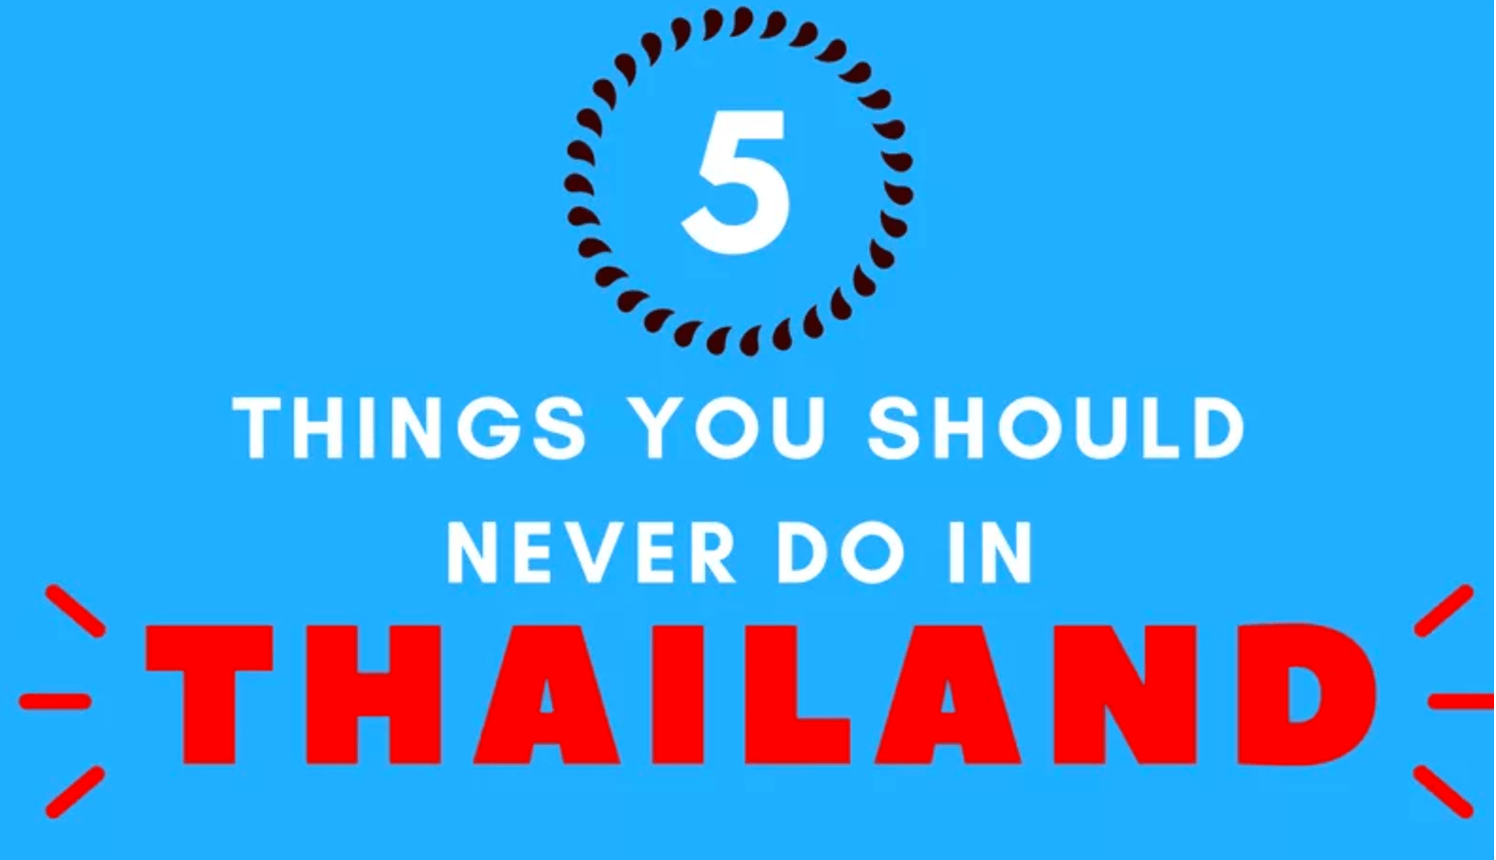 6453592d2c3d1 5 things you should not do in Thailand [infographic] - My-Thai.org